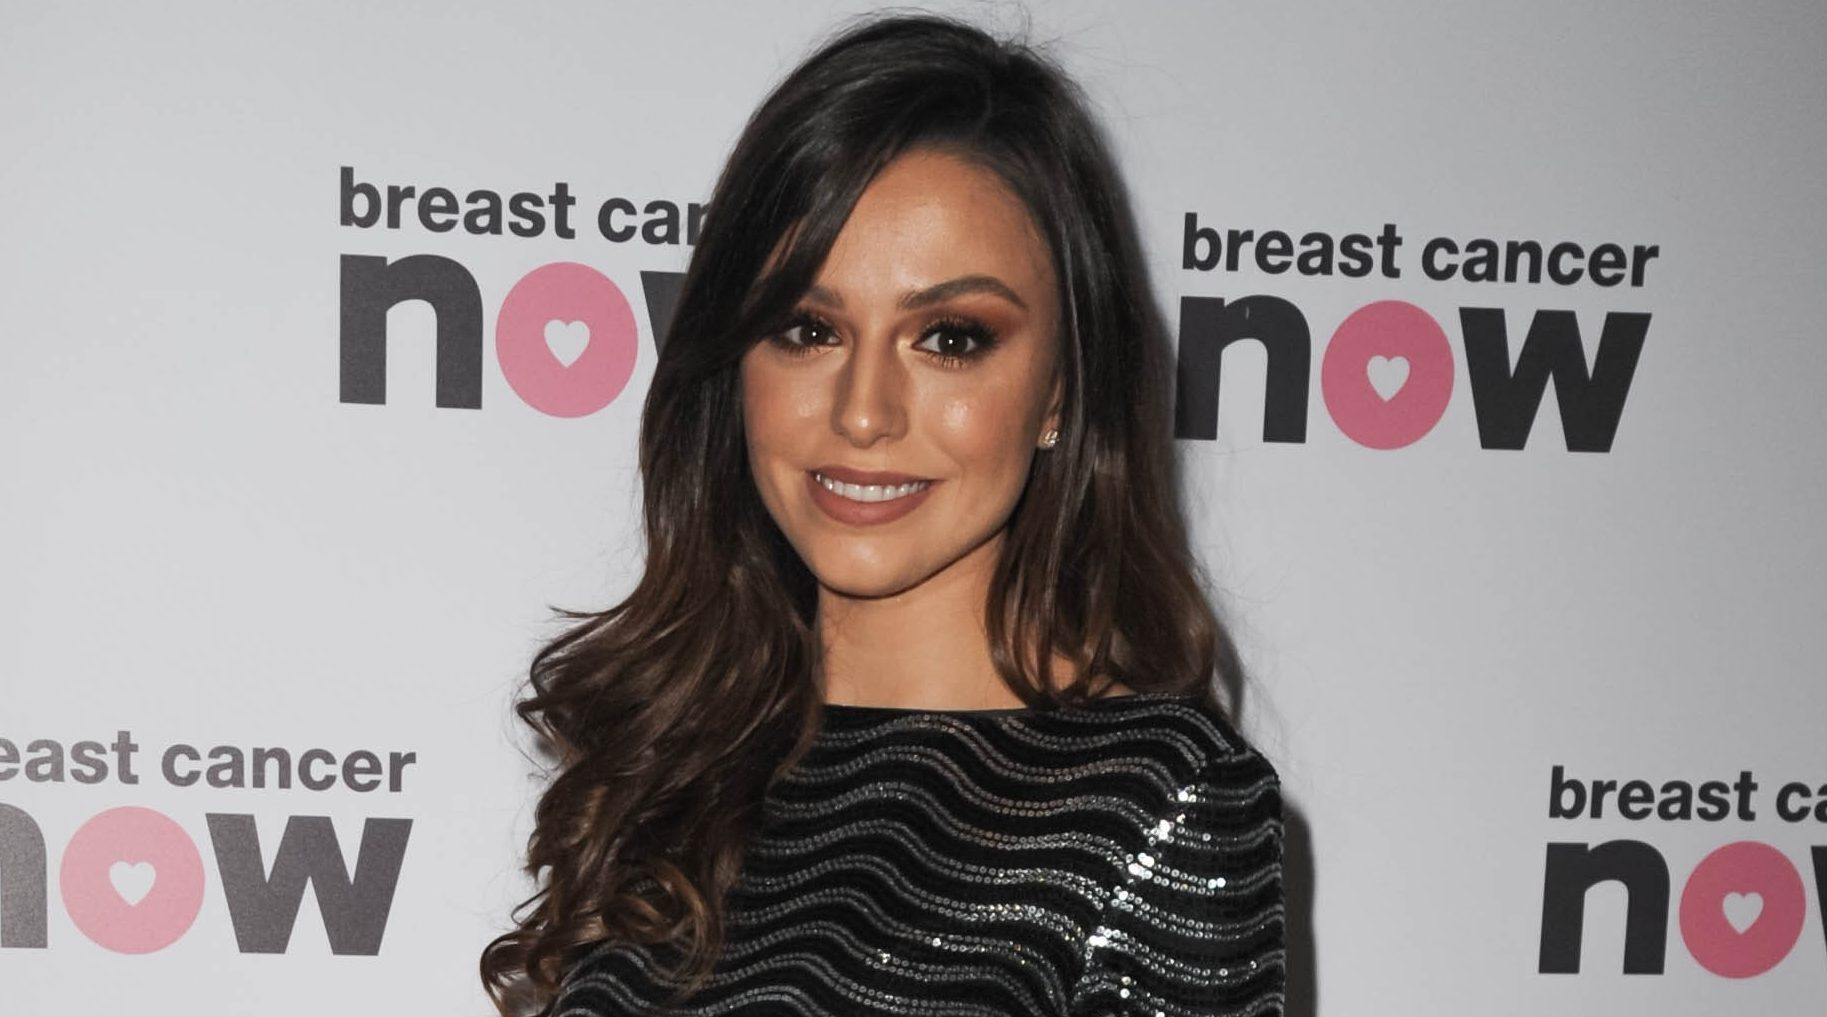 X Factors Cher Lloyd Shares Baby Bump Photo As Due Date Nears